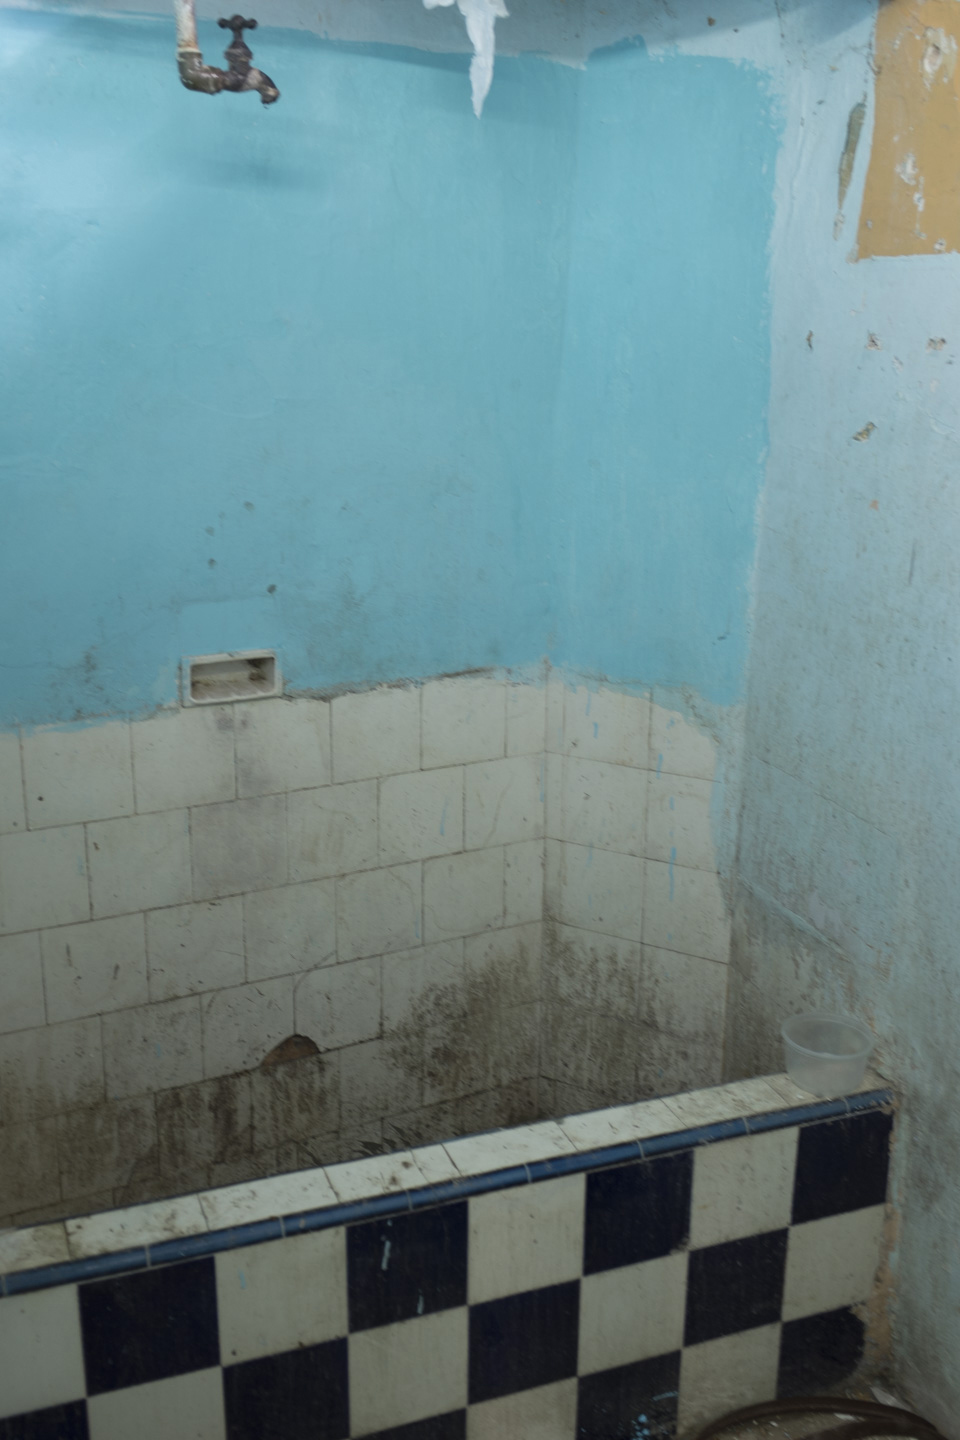 The bathroom of the old apartment